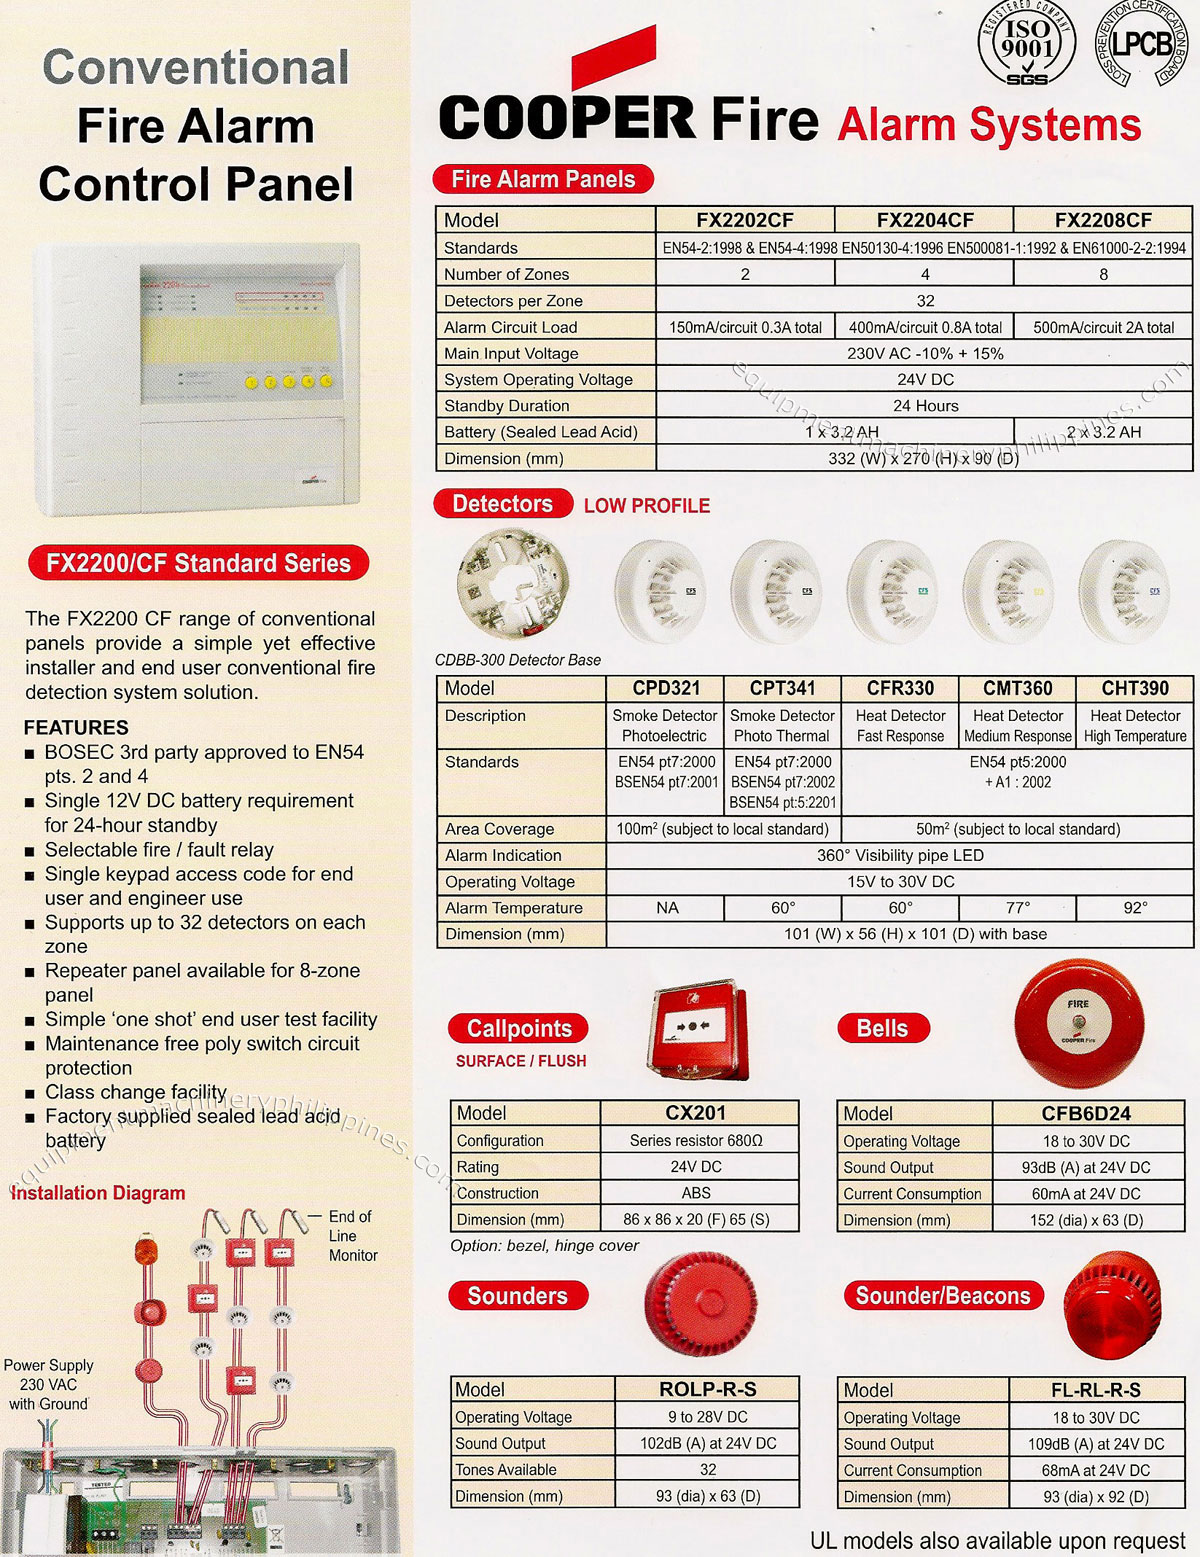 08_Cooper_Fire_Alarm_Systems_Installation_Diagram cooper fire alarm systems, installation diagram philippines menvier smoke detector wiring diagram at virtualis.co